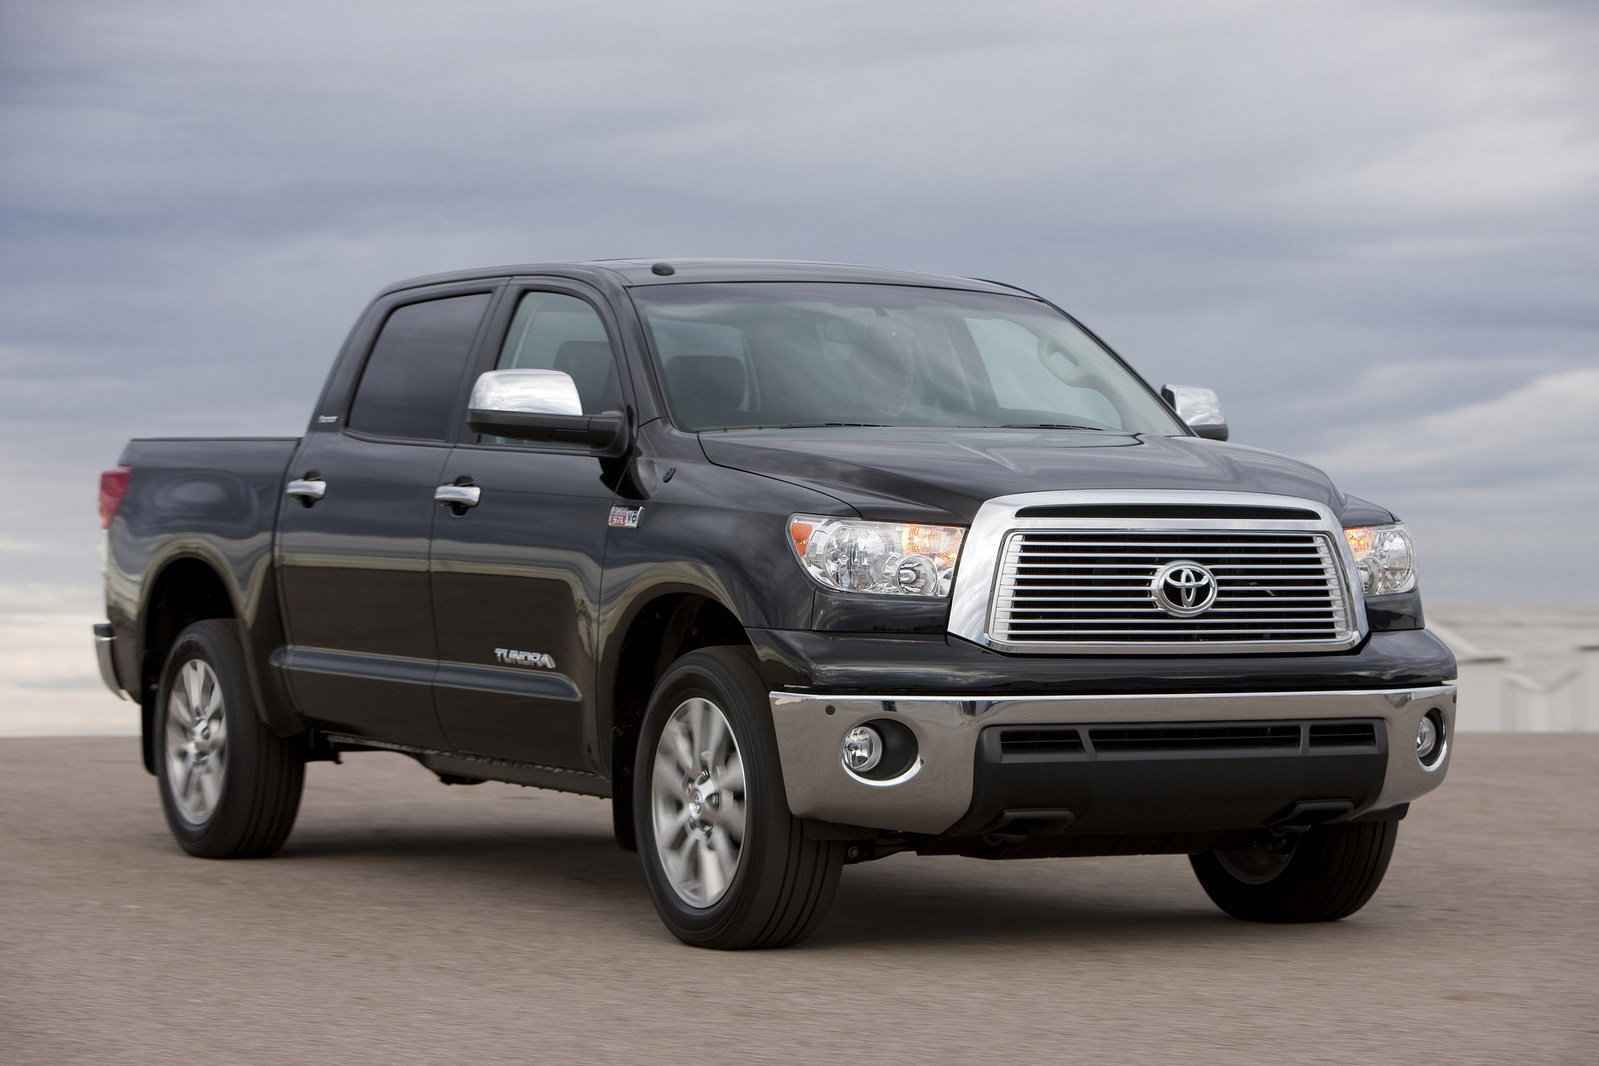 Toyota Tundra Towing Capacity >> 2011 Toyota Tundra Review - Top Speed